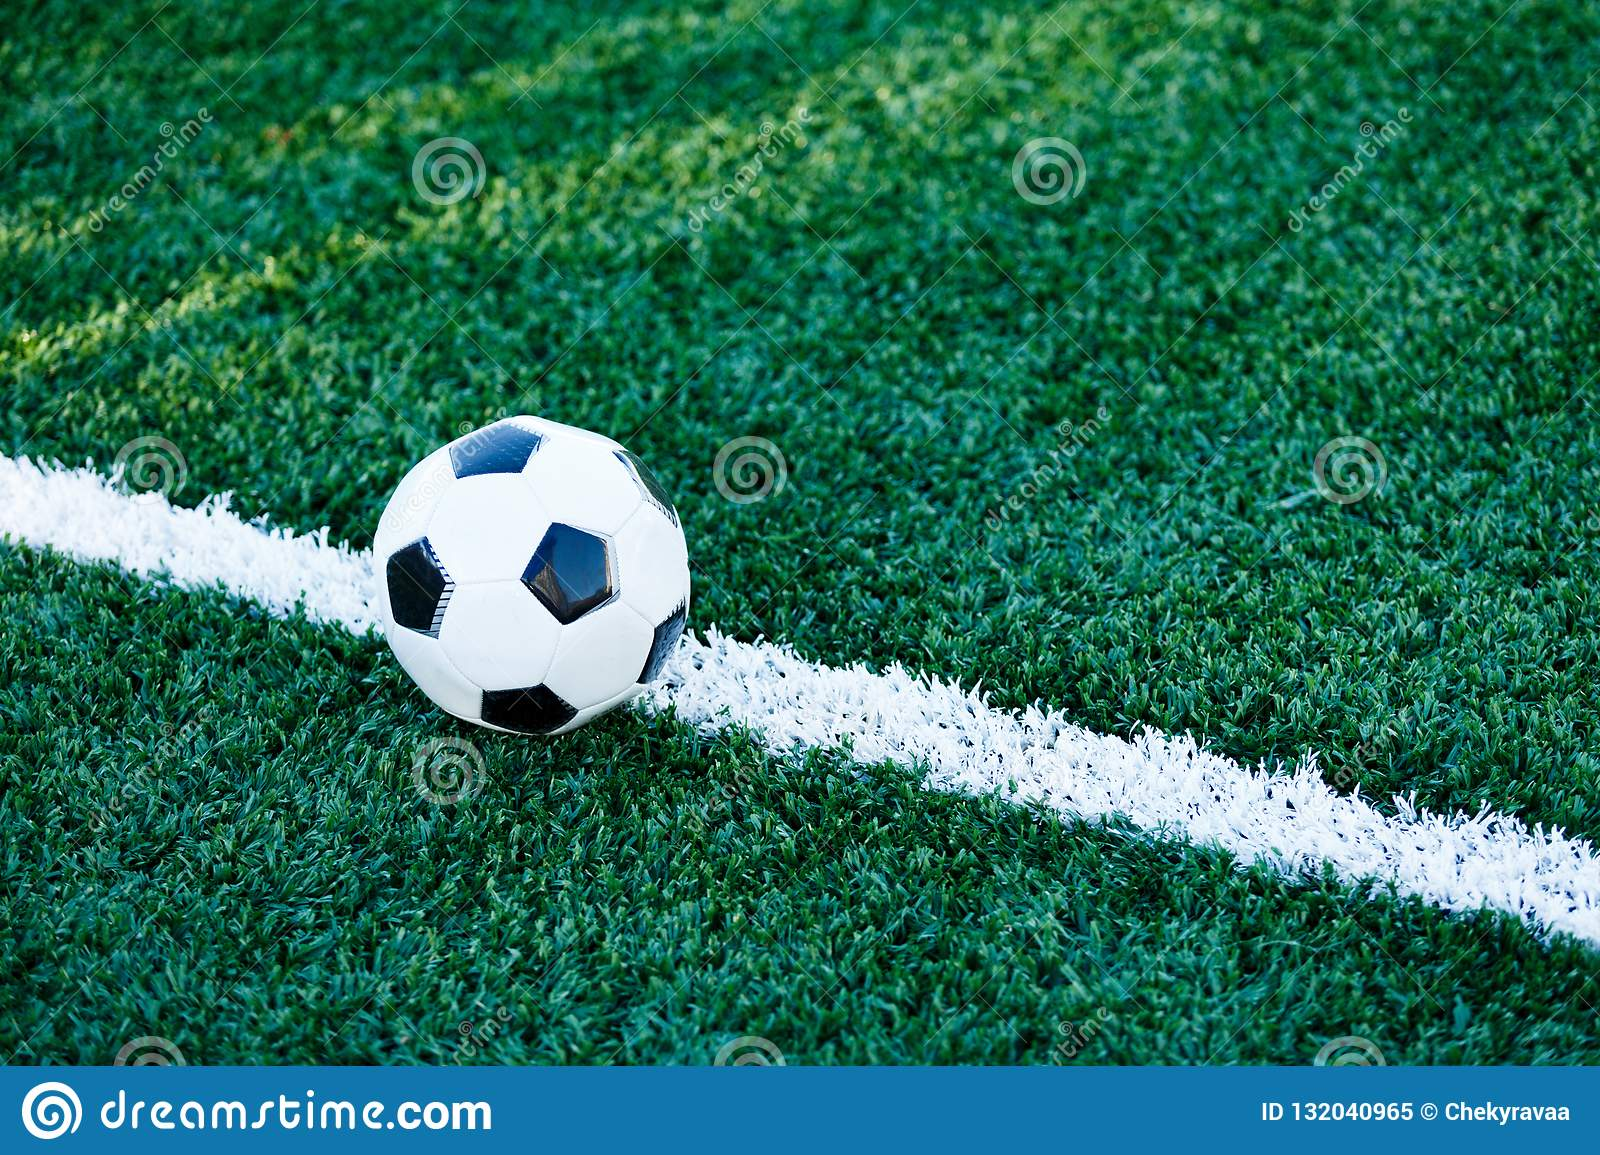 Classical black and white football ball on the green grass of the field. Soccer game, training, hobby concept.